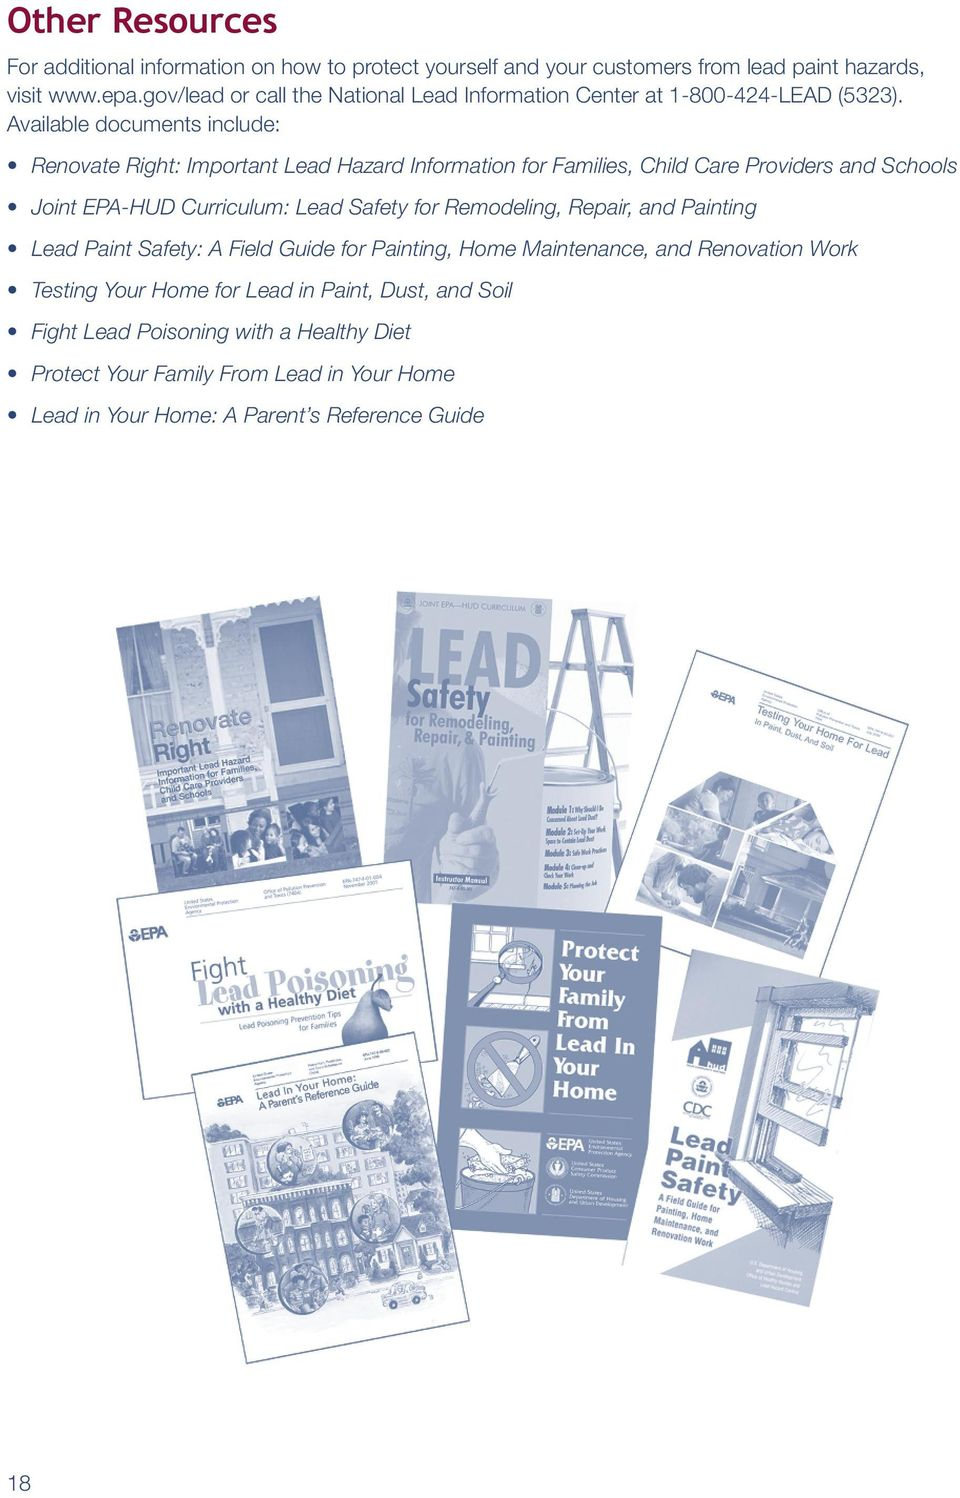 Available documents include: Renovate Right: Important Lead Hazard Information for Families, Child Care Providers and Schools Joint EPA-HUD Curriculum: Lead Safety for